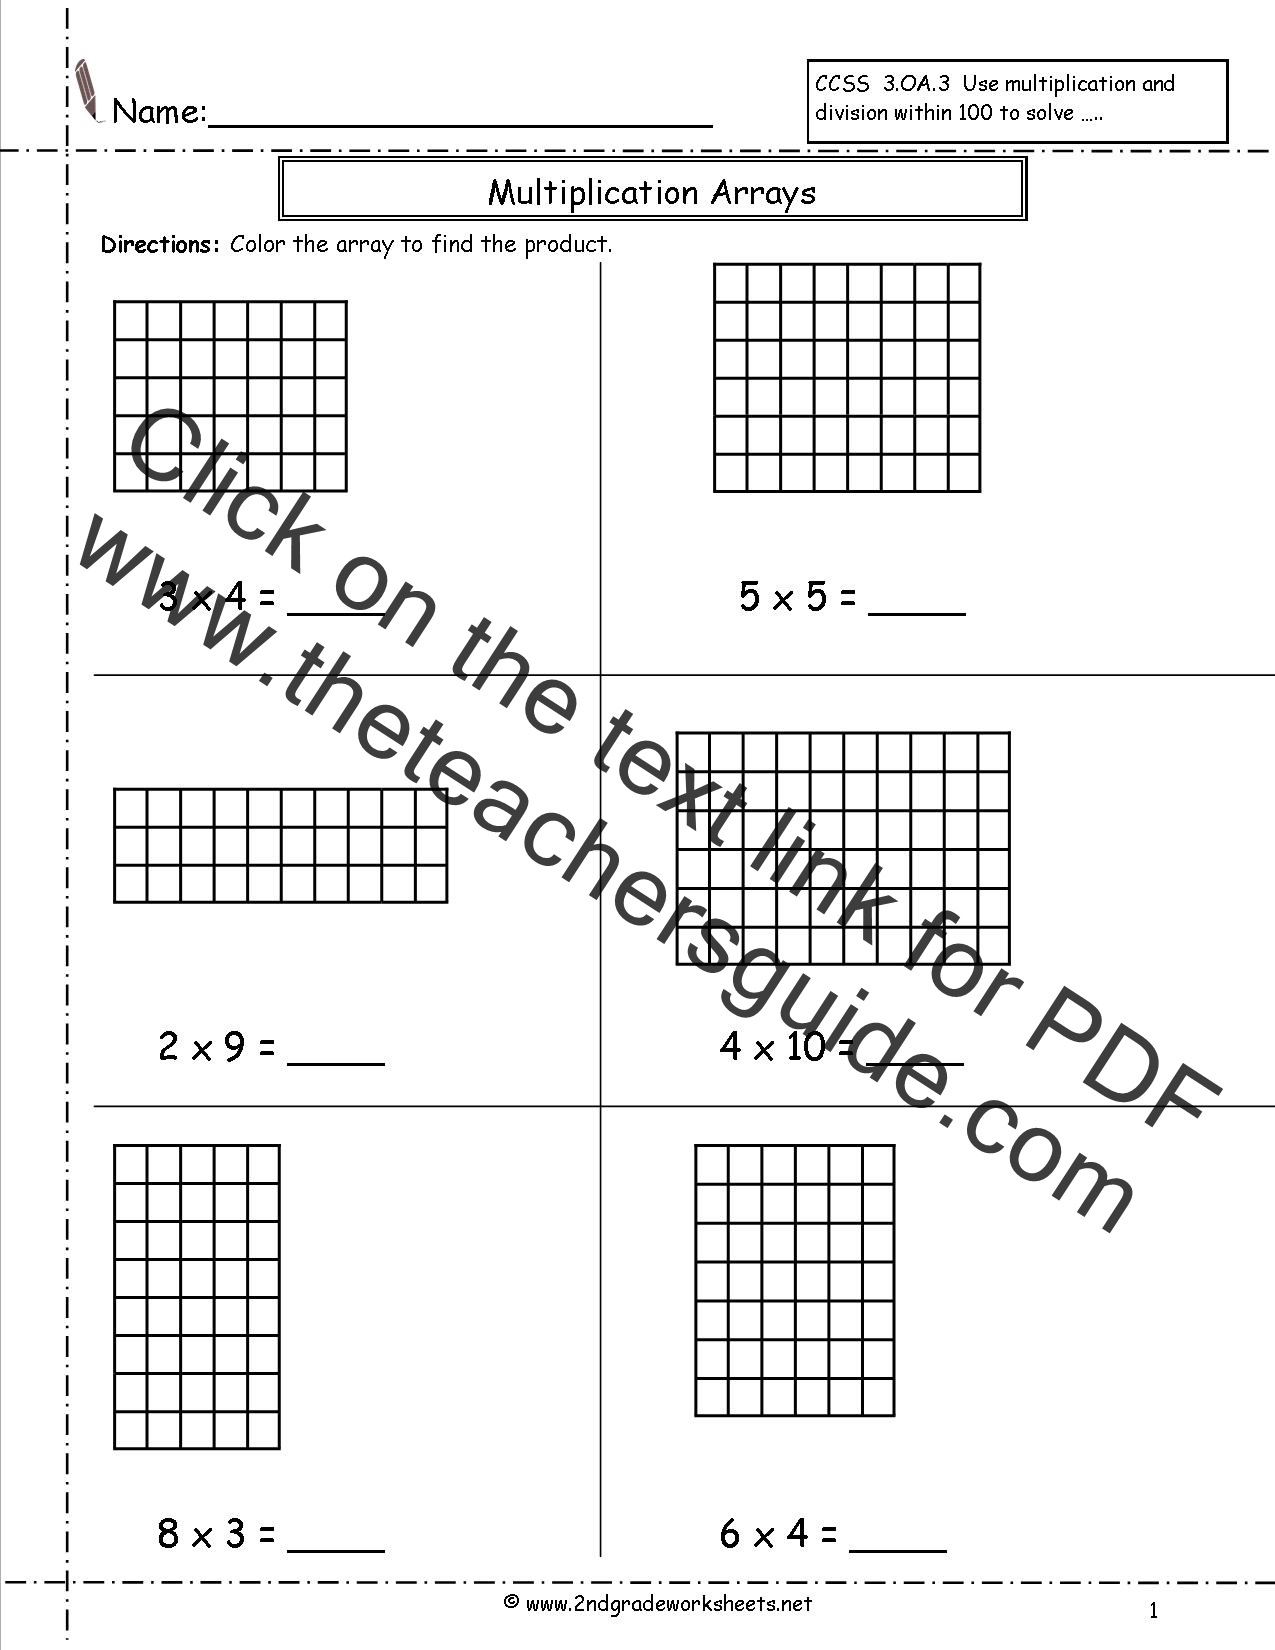 Multiplication Arrays Worksheets – Multiplication Arrays Worksheet